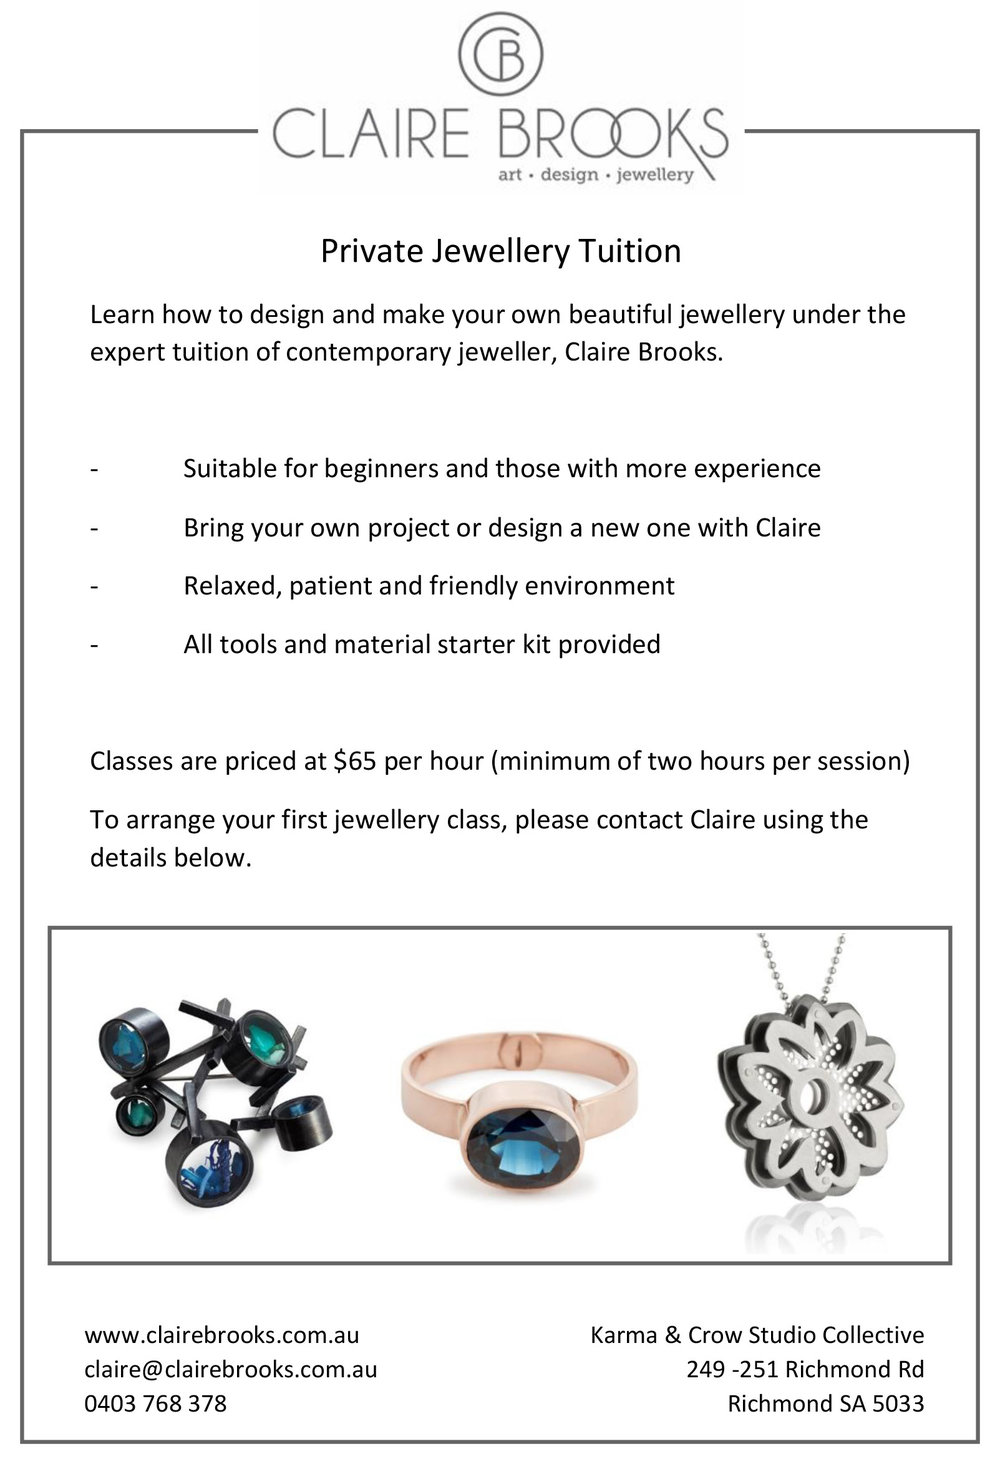 Private Jewellery Tuition Flyer.jpg